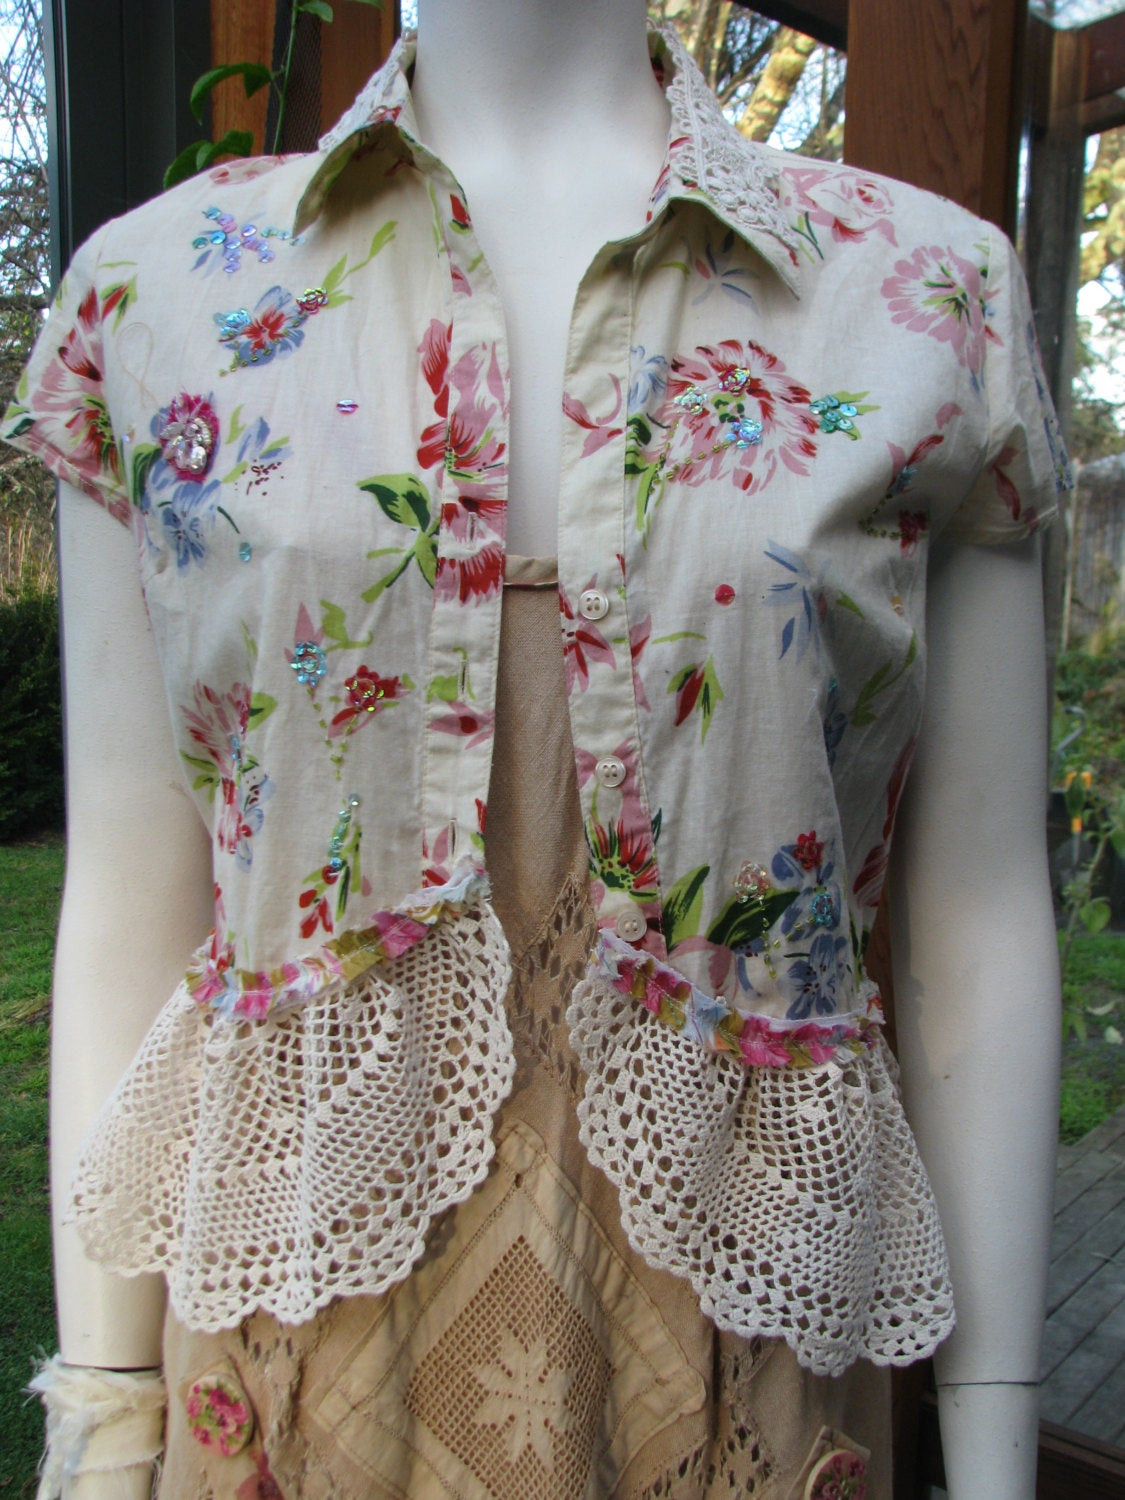 Best ideas about Shabby Chic Clothing . Save or Pin Boho Blouse Altered Couture Shabby Chic Upcycled Clothing Now.